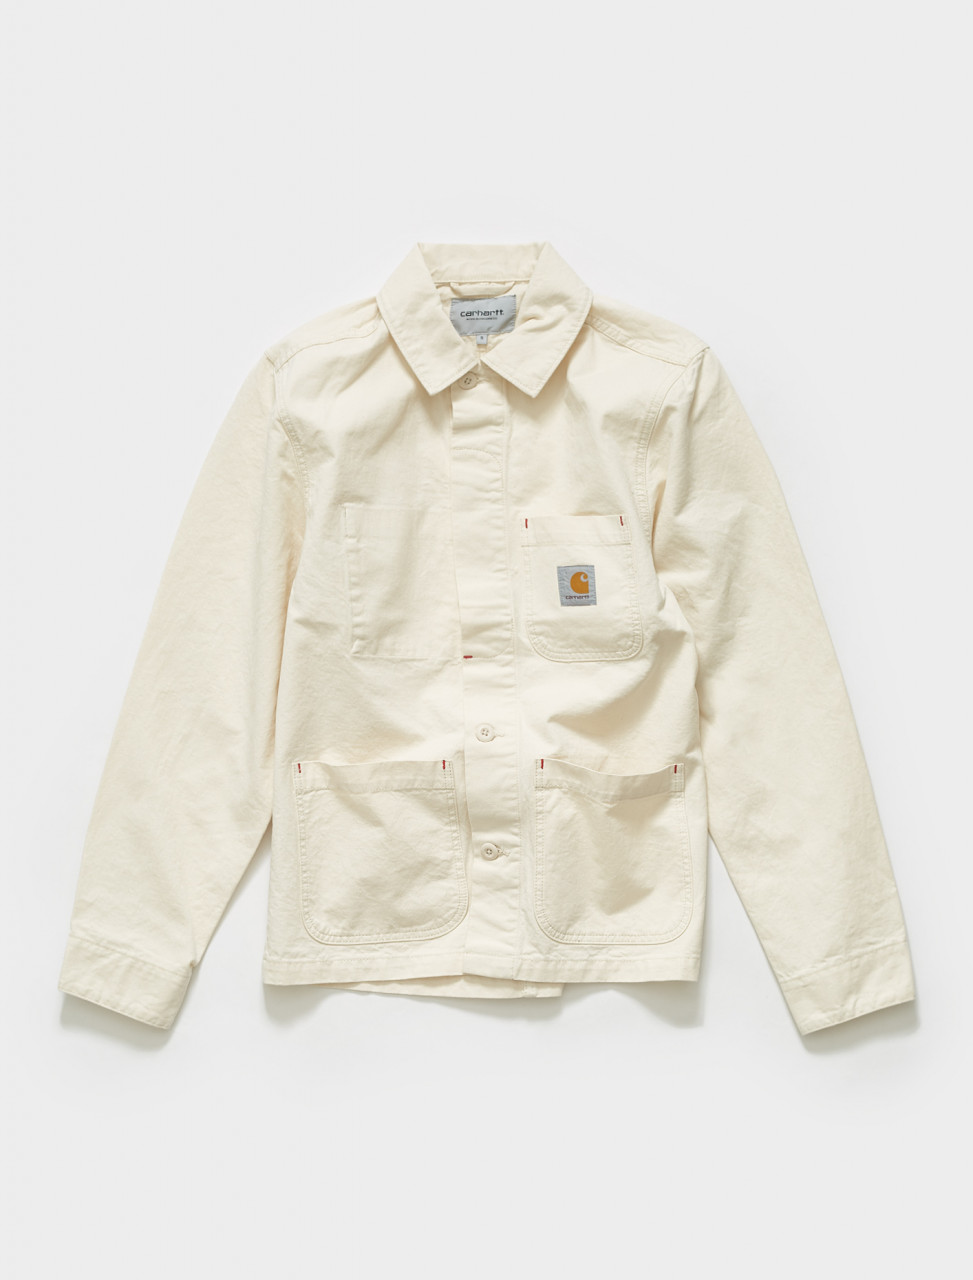 I029119-05 CARHARTT WIP WESLEY JACKET IN NATURAL